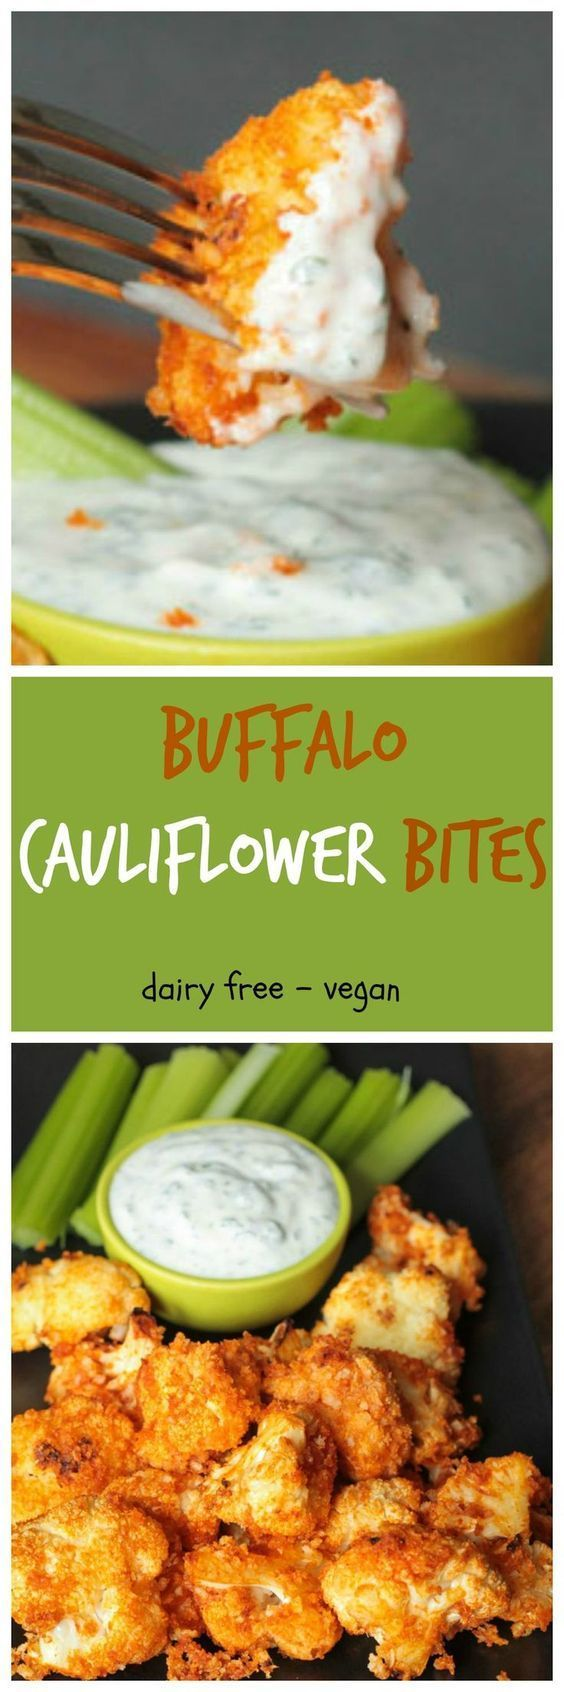 Hands down my all time favorite !! Only I make vegan bluecheese dressing. I have been eating so unhealthy with all this damn stress..time to get back at it!::